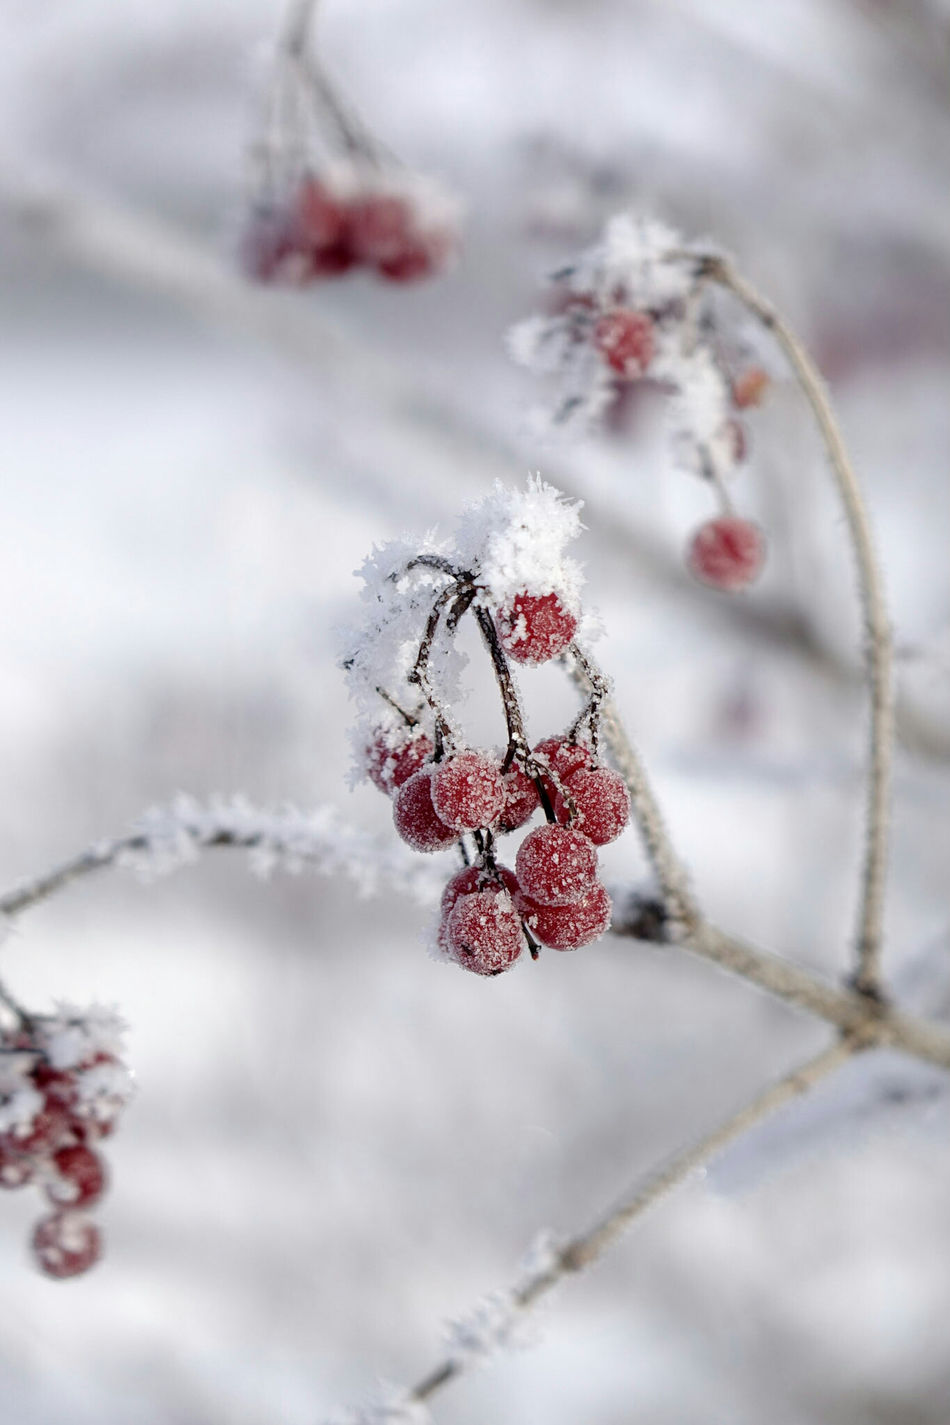 Close-up Frosted Nature Frosted Berries Snow Winter Nature's Wonder Frosty Nature Frozen In Time Cold Weather Wintertime Beauty In Nature Snowflakes Frozen Winter Frost Nature Winter Wonderland EyeEm Best Shots EyeEm Nature Lover Frozen Nature Getting Inspired Cold Temperature